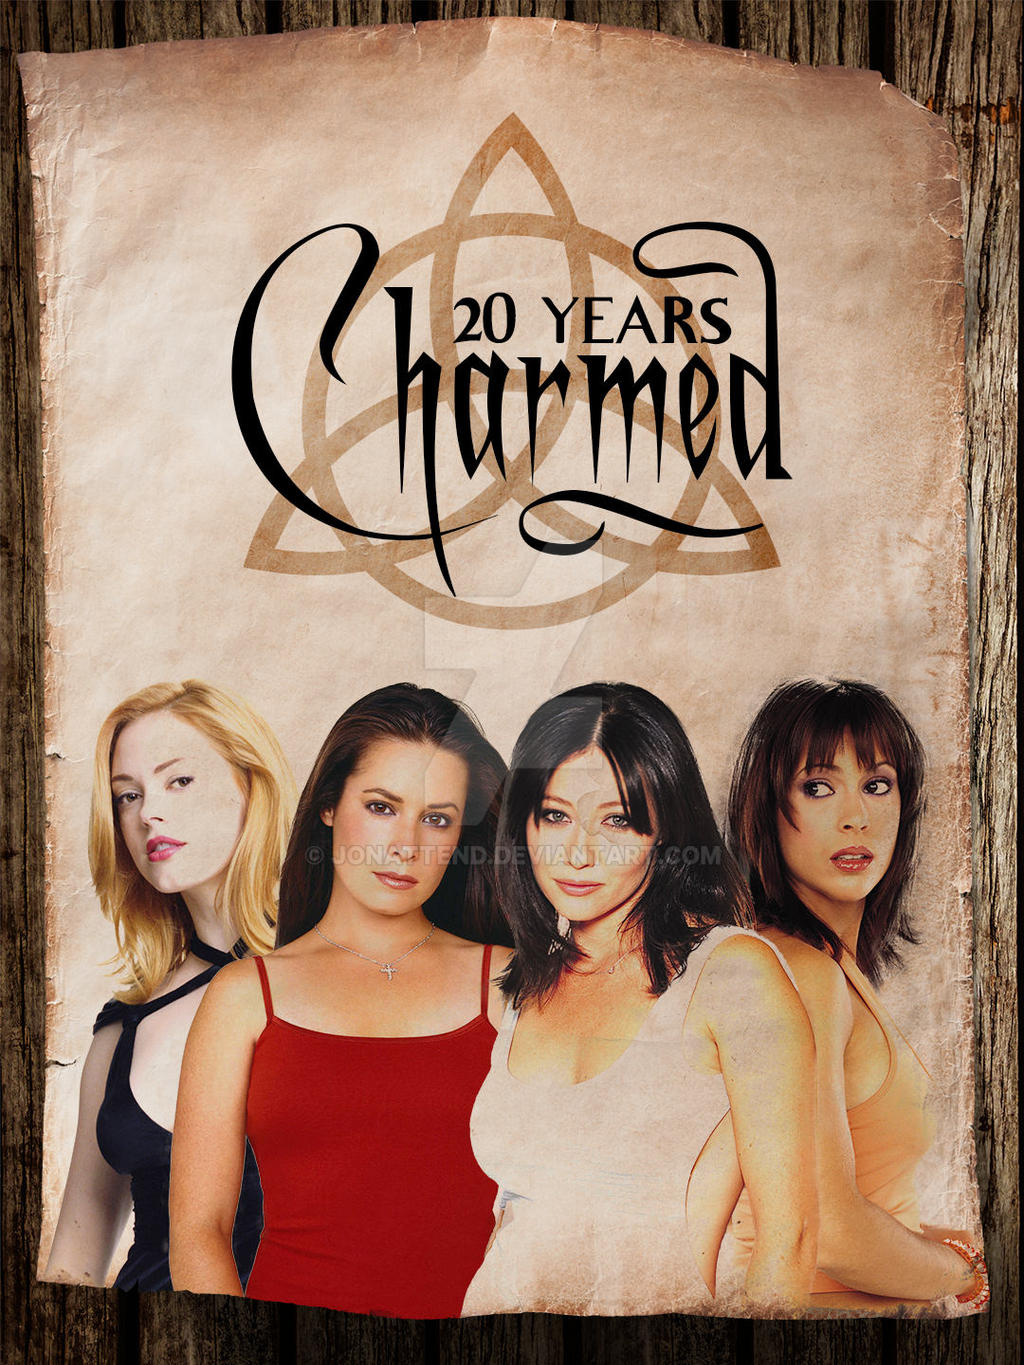 Charmed - 20 Years Poster by Jonattend